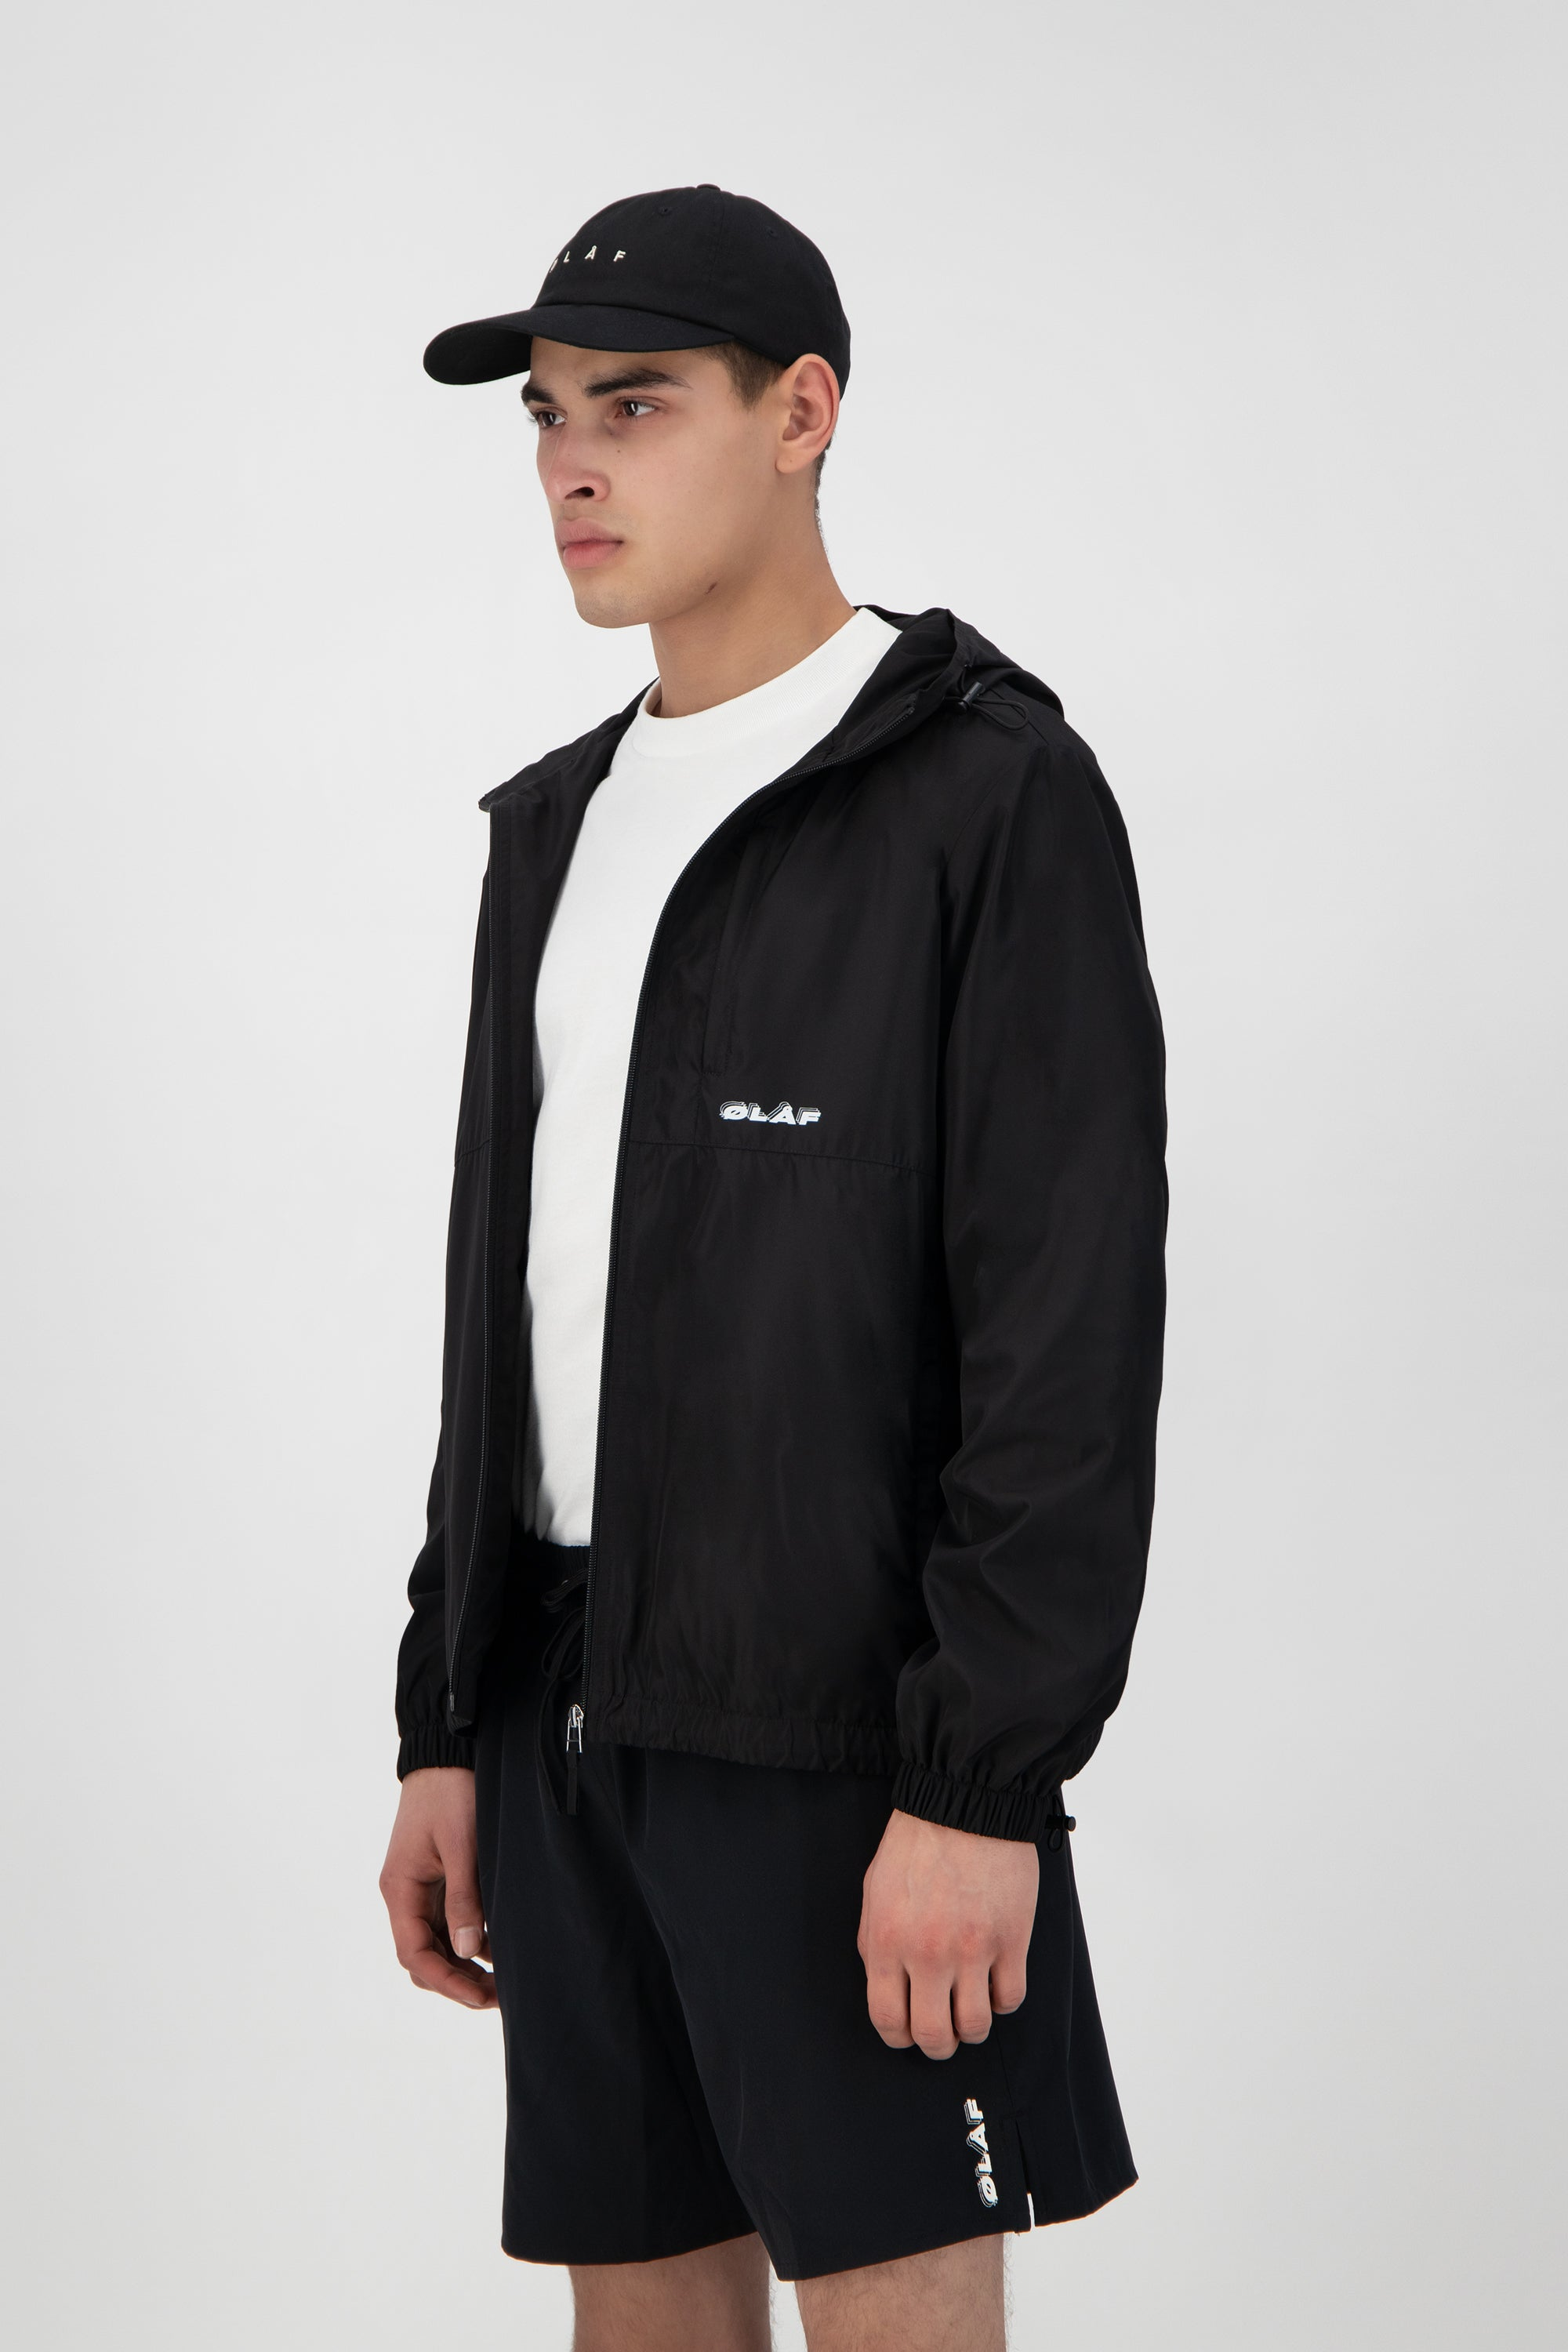 ØLÅF Zip Jacket <br>Black